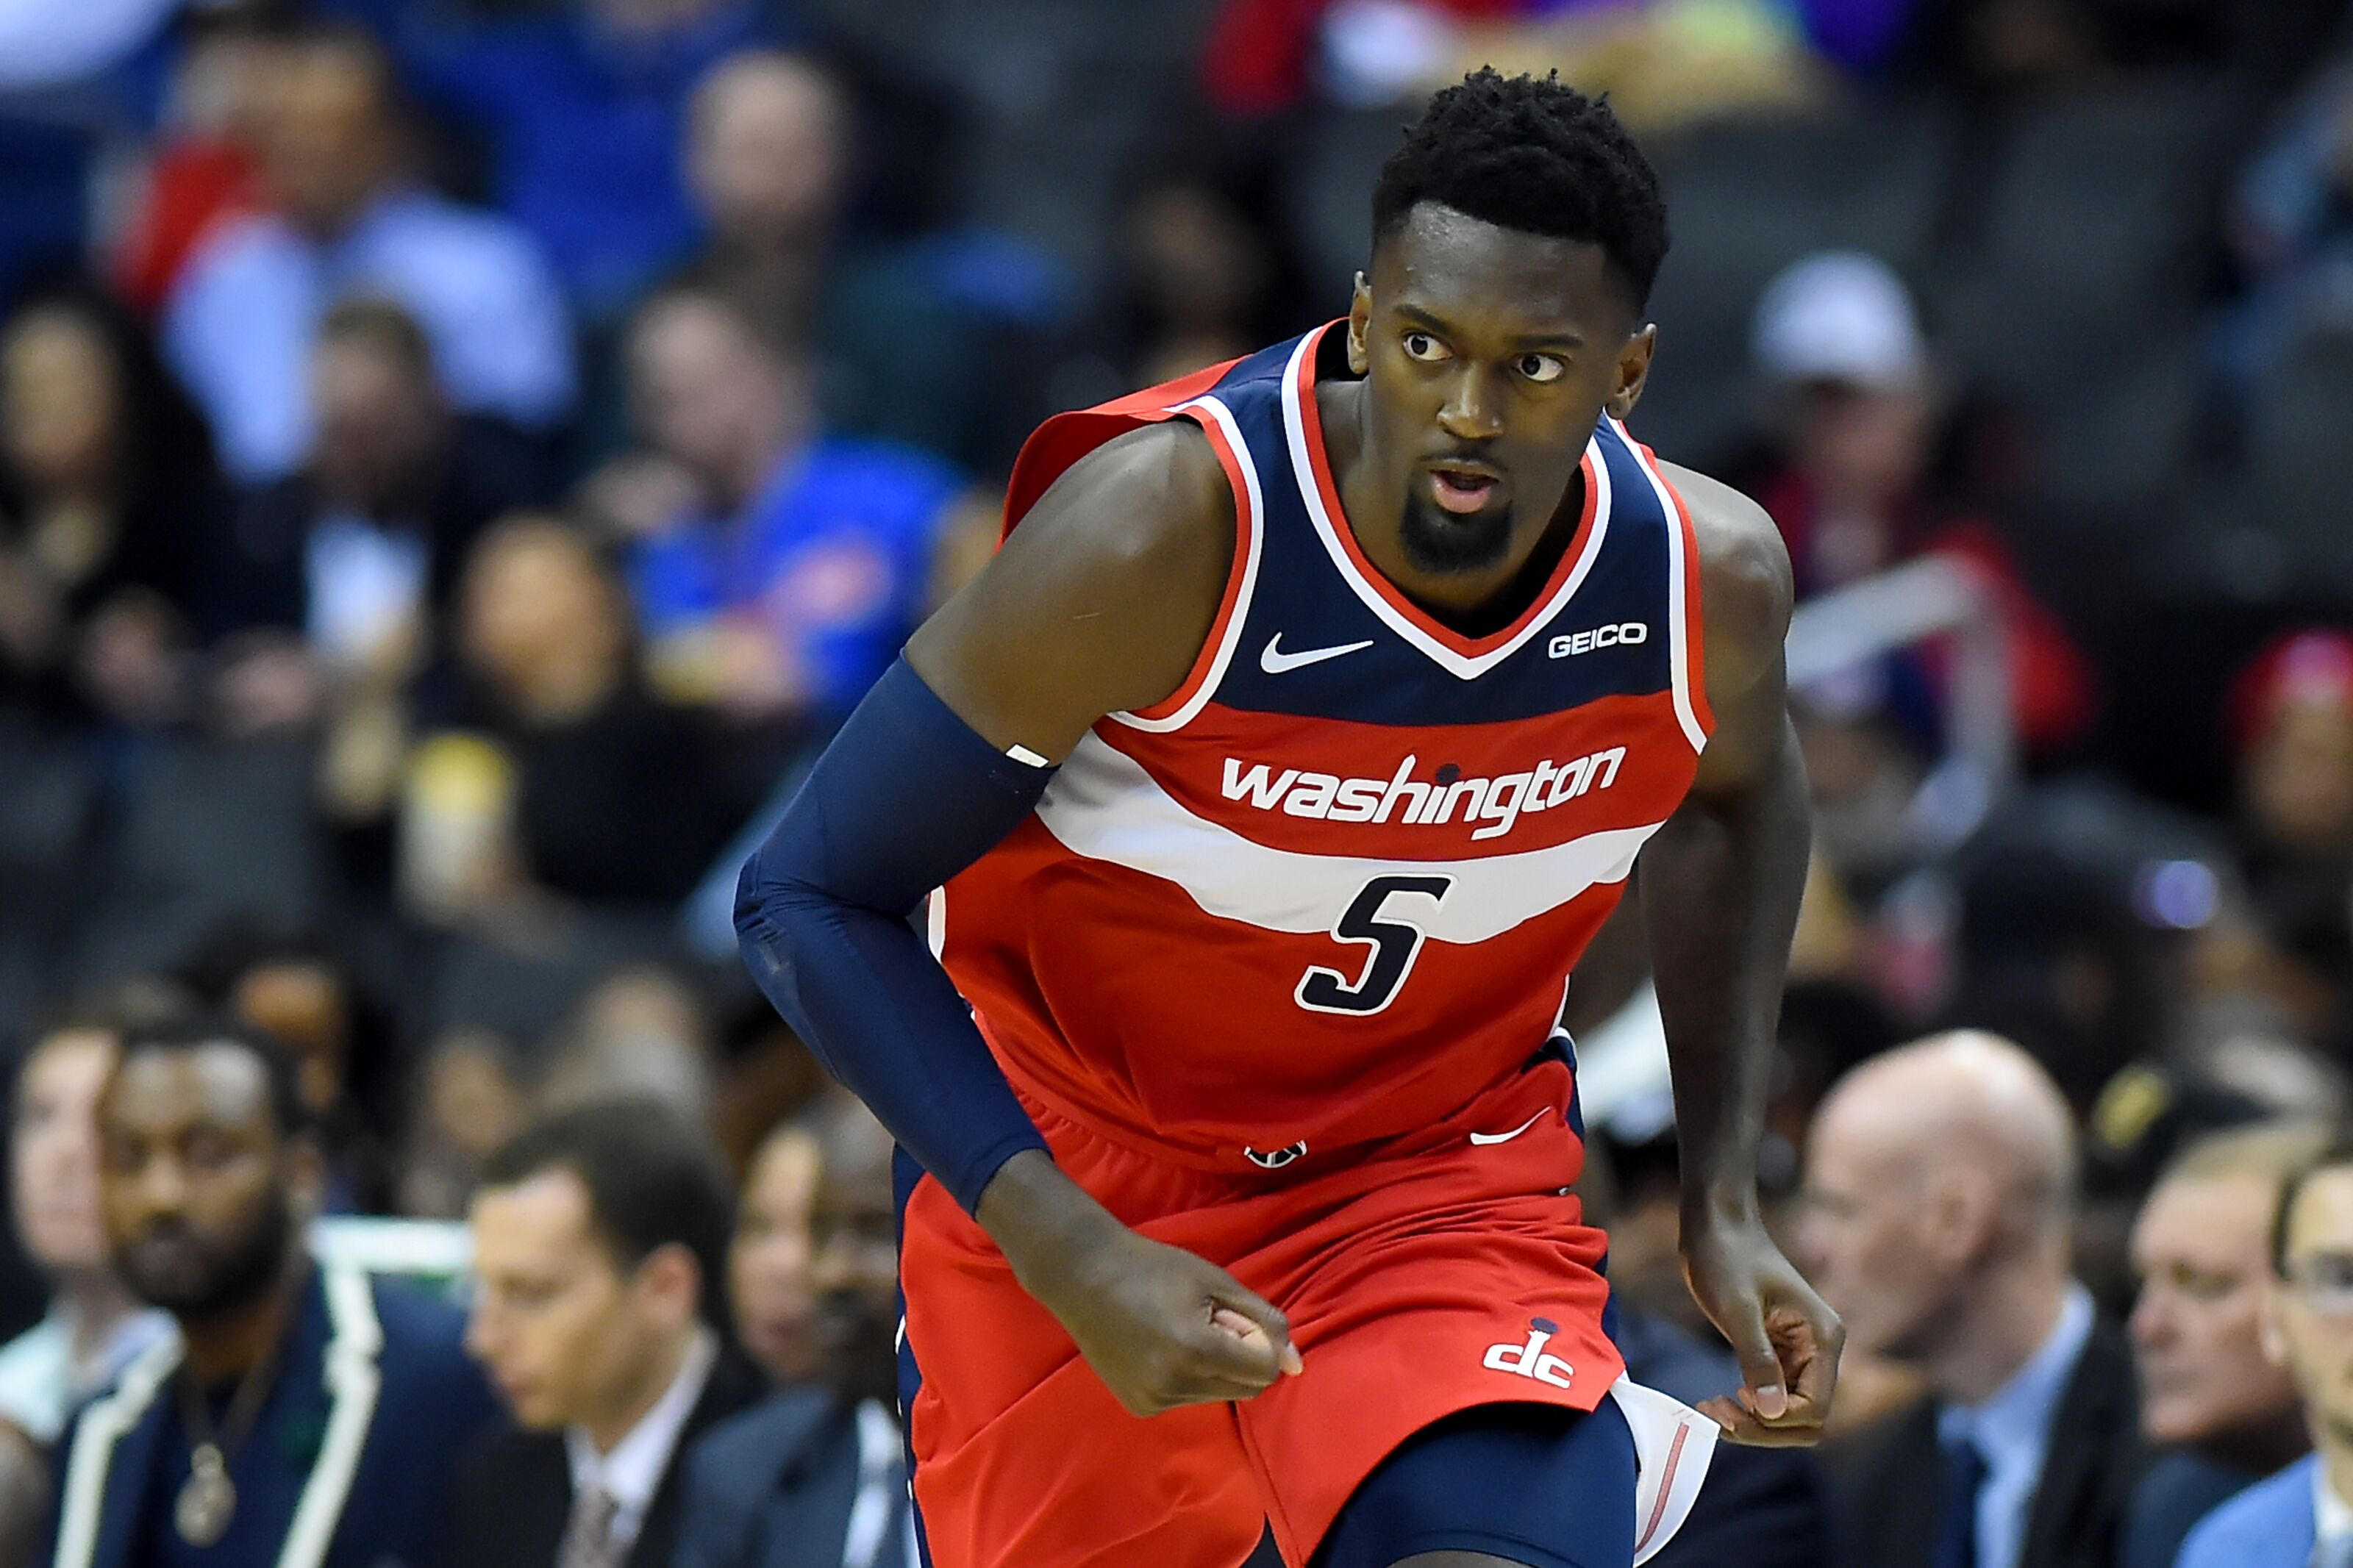 Washington Wizards: Is Bobby Portis the team's next All-Star?